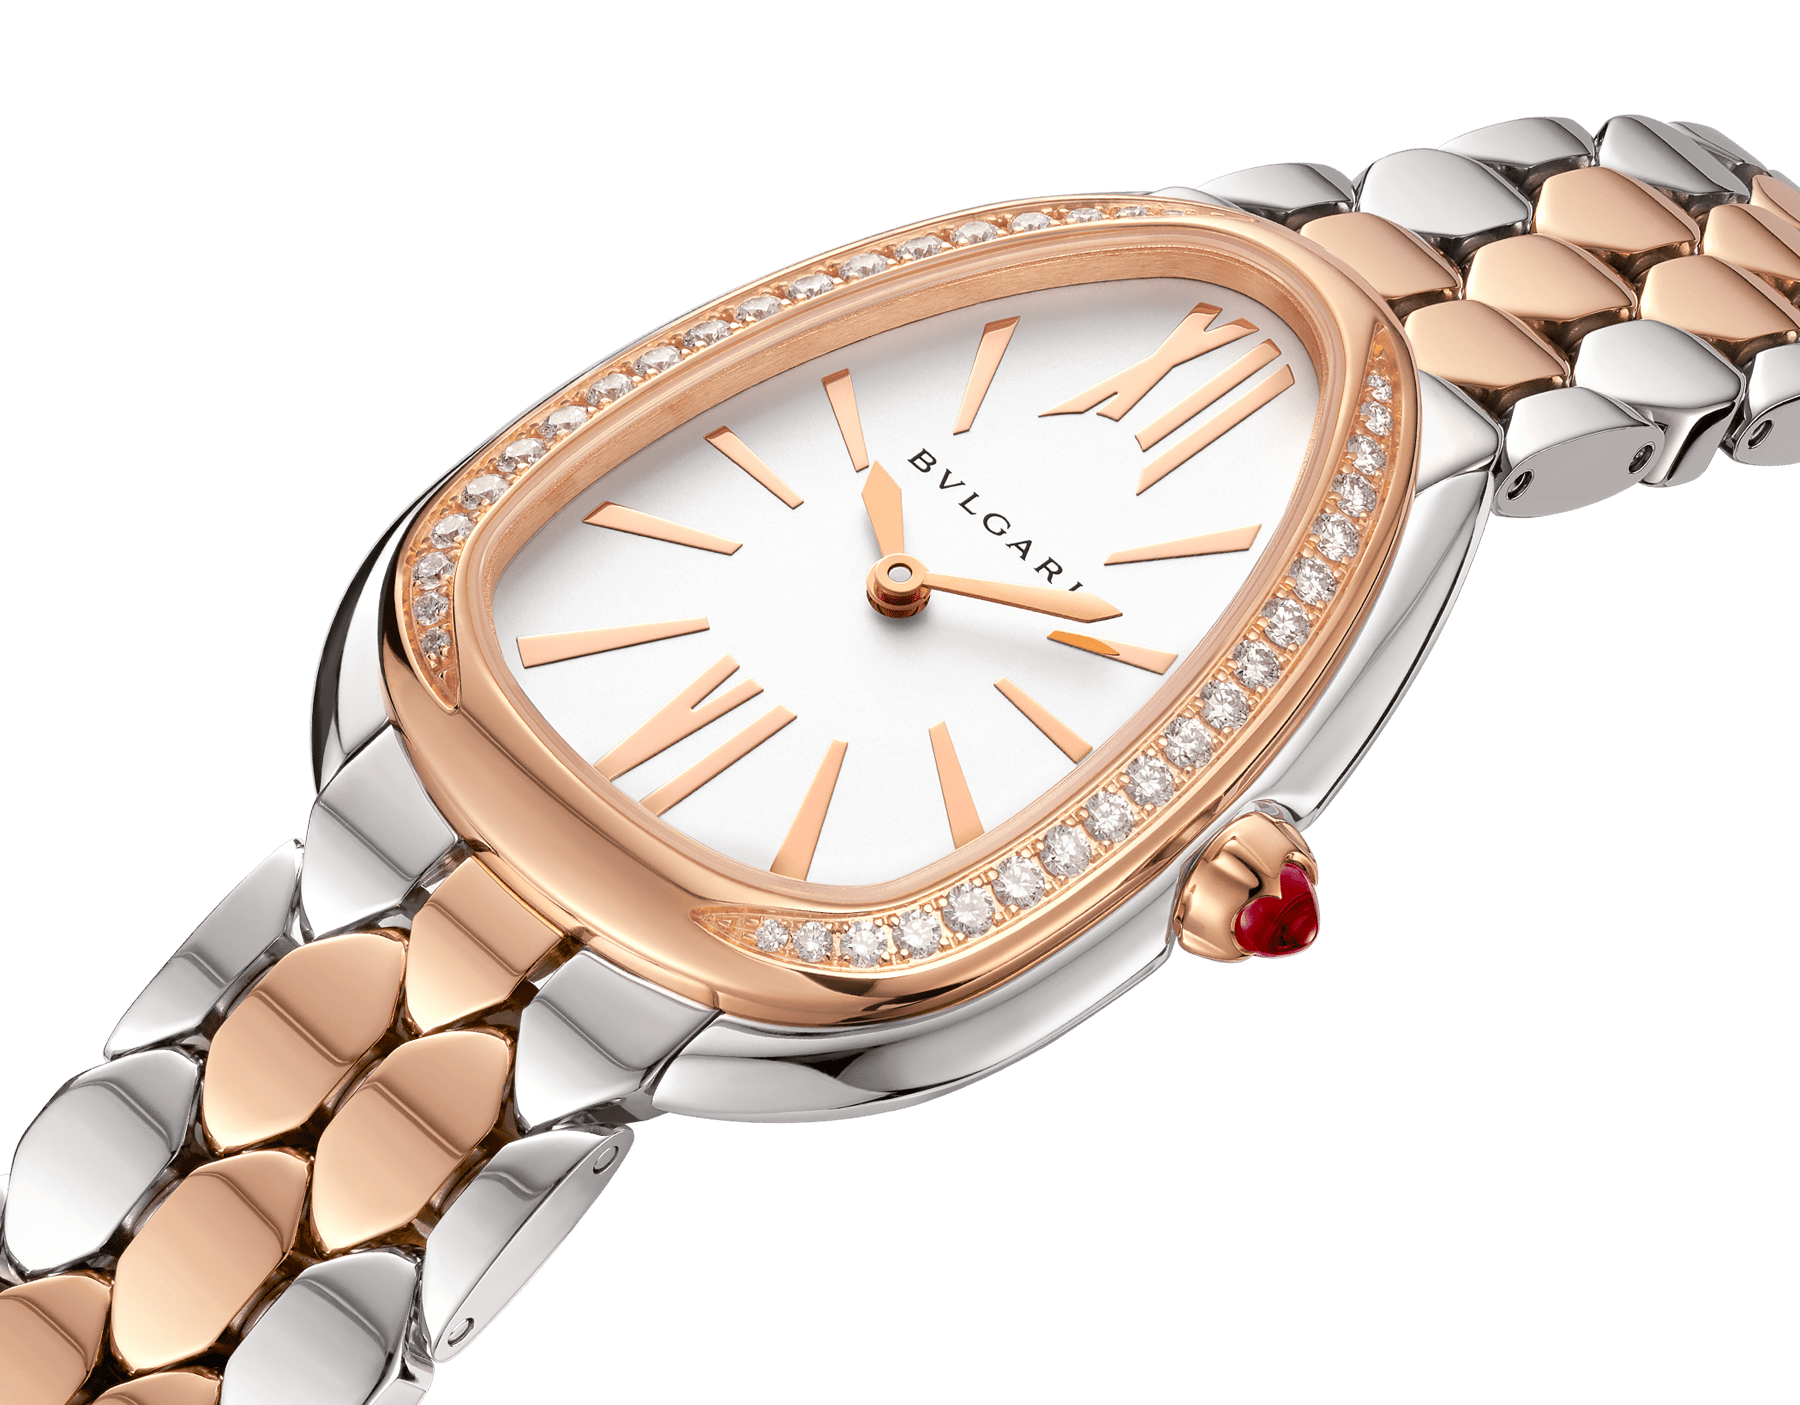 Serpenti Seduttori watch with stainless steel case, 18 kt rose gold bezel set with diamonds, white dial, and 18 kt rose gold and stainless steel bracelet 103274 image 2